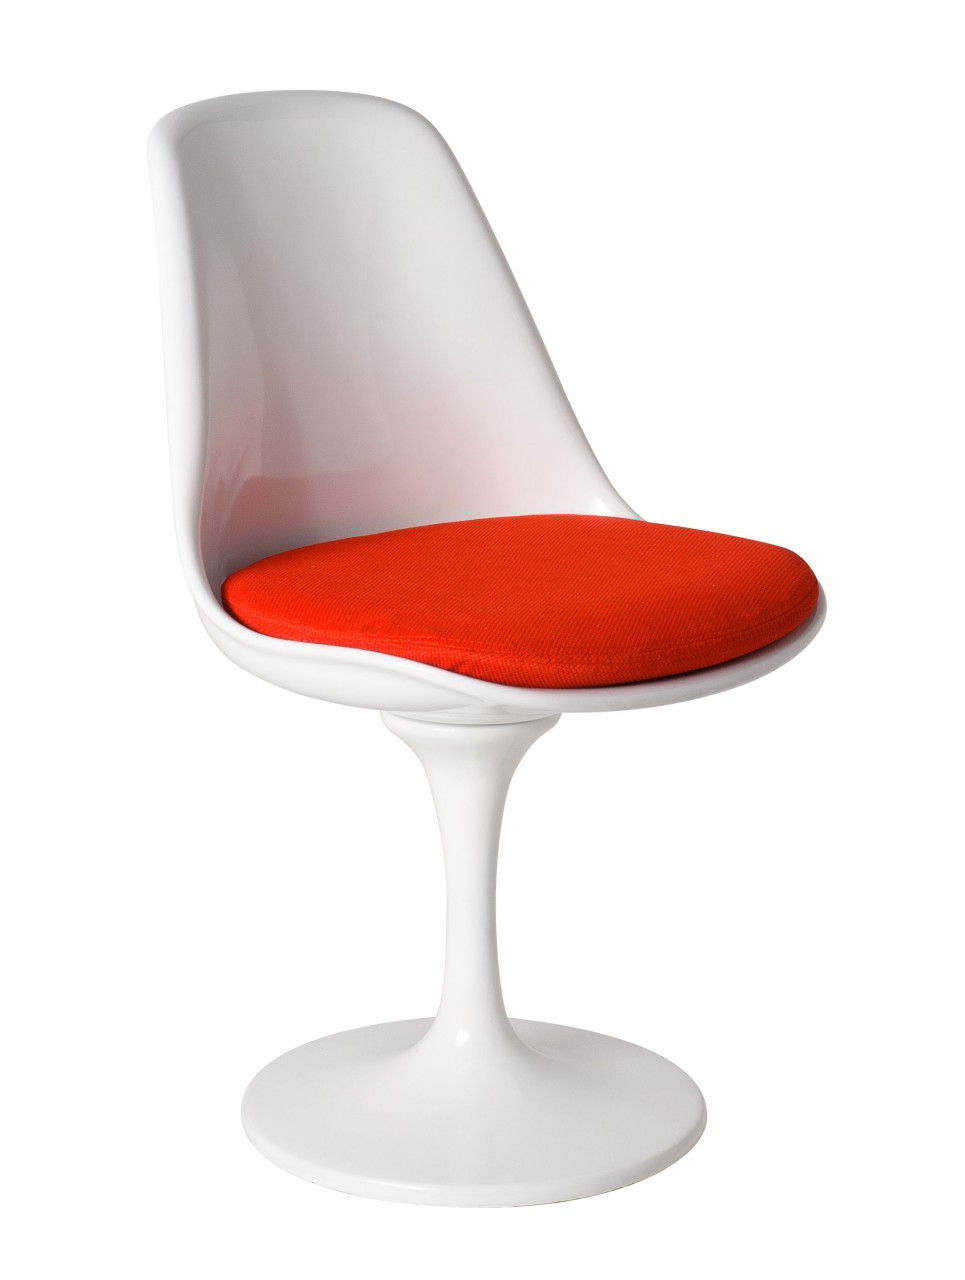 Milano republic furniture not found - Replica tulip chair ...